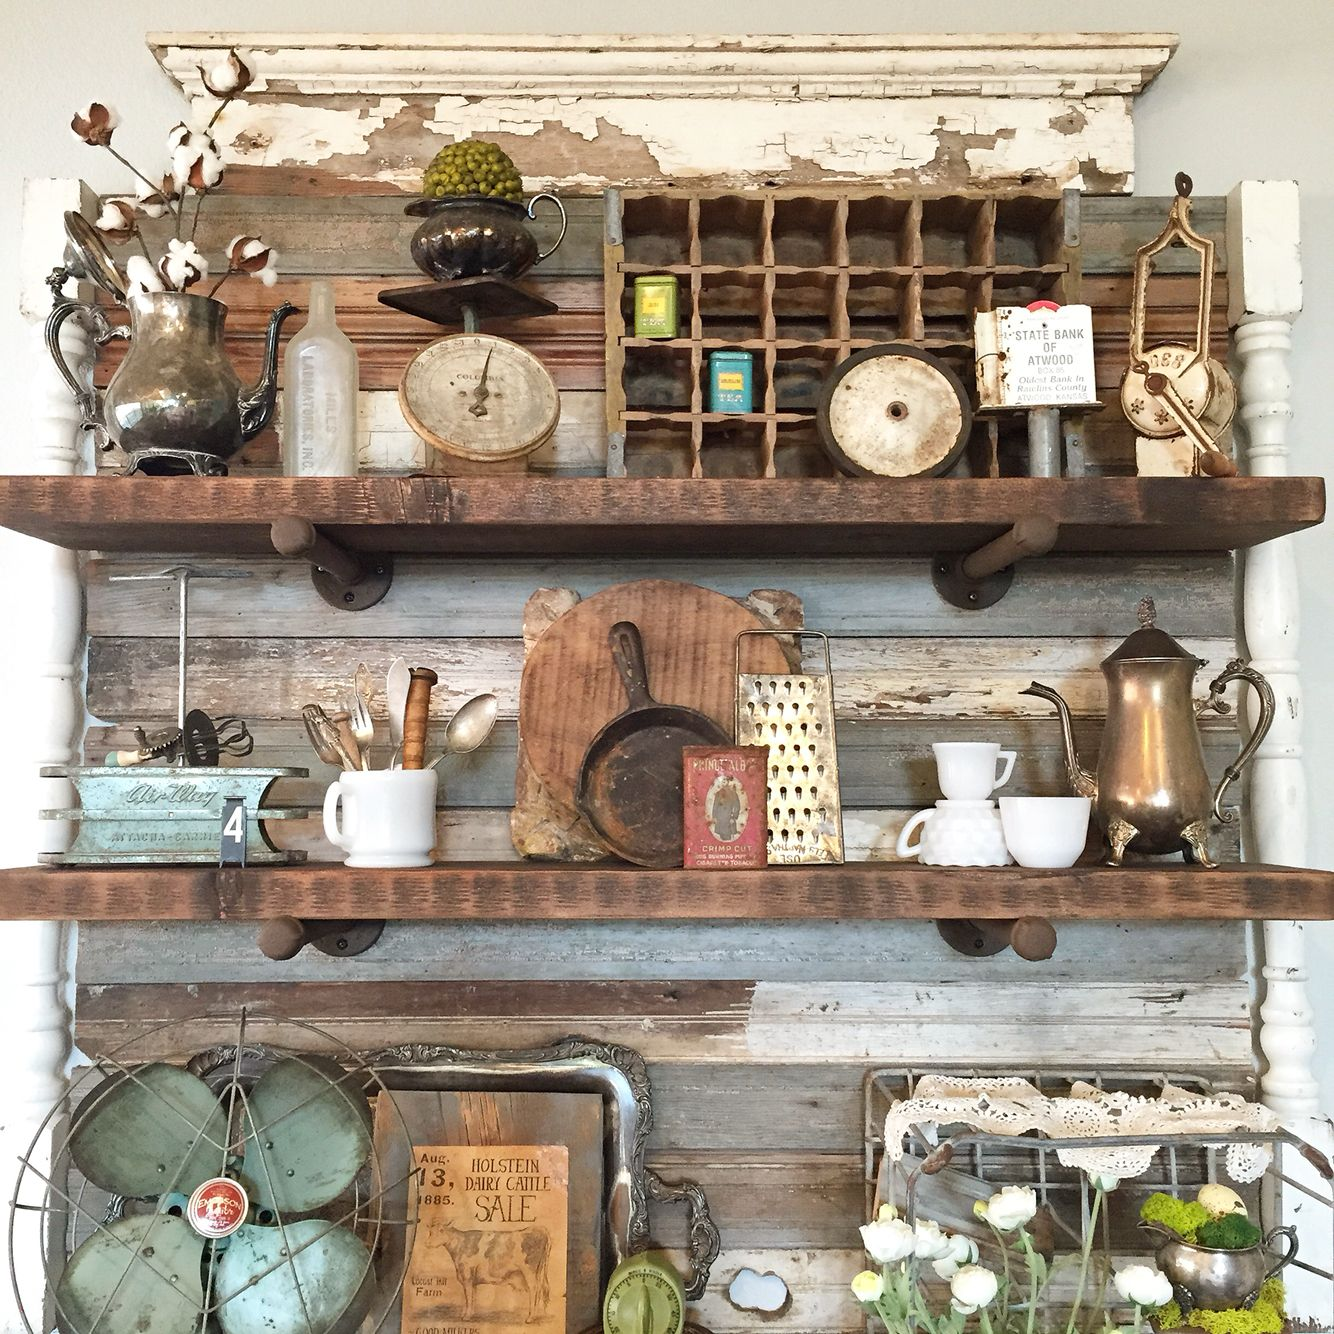 Home Decor Shop Design Ideas: DIY Shelves & Shabby Chic Vintage Decor